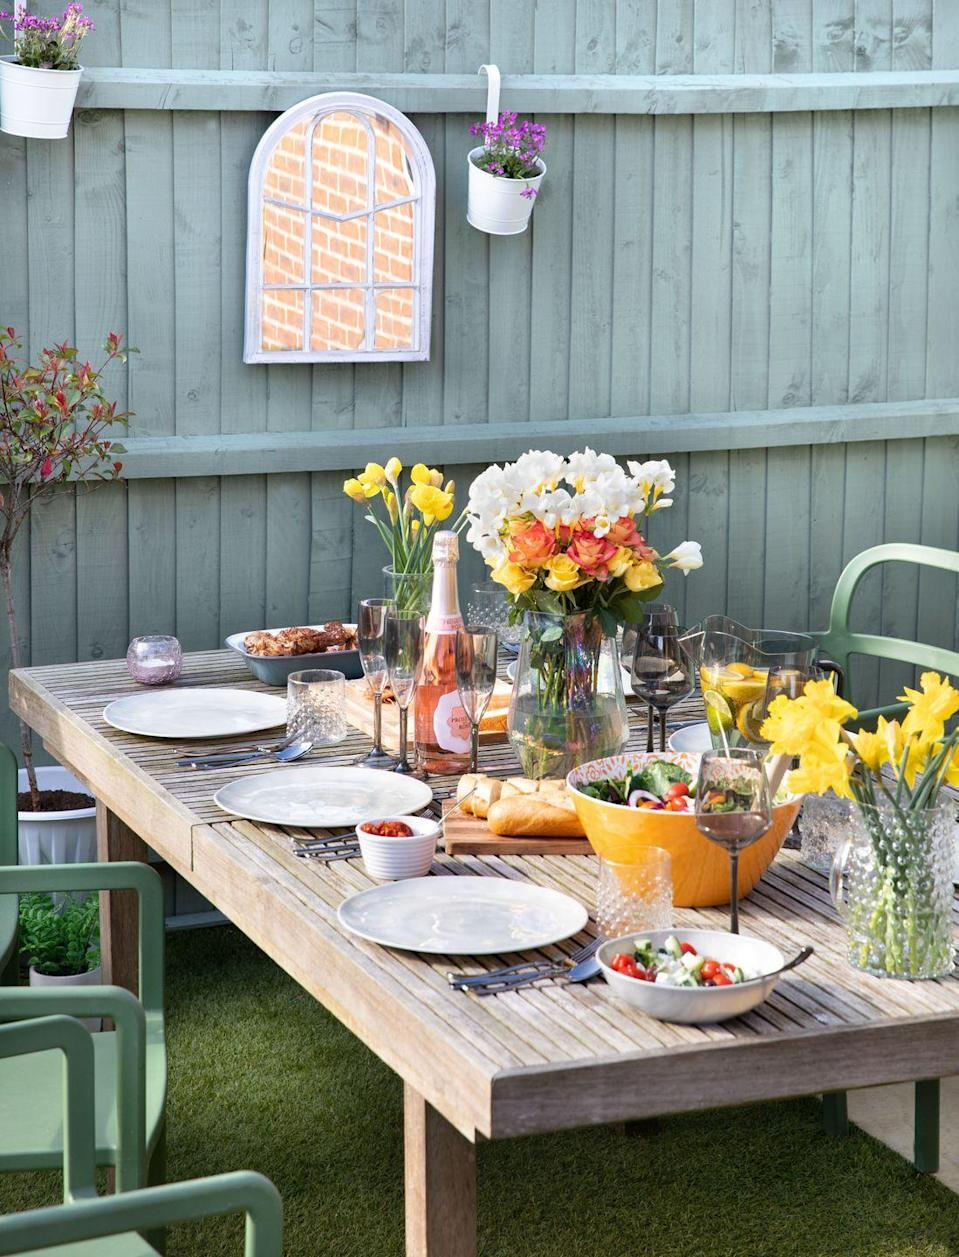 """<p>There's lots to get your hands on in the range, including decorative <a href=""""https://www.housebeautiful.com/uk/garden/g32755466/garden-accessories/"""" rel=""""nofollow noopener"""" target=""""_blank"""" data-ylk=""""slk:accessories"""" class=""""link rapid-noclick-resp"""">accessories</a> such as stone pears and apples (£3), as well as unique garden gargoyle figurines (£3). Why not place them around your dining area for wow factor? </p><p><a class=""""link rapid-noclick-resp"""" href=""""https://www.poundland.co.uk/store-finder/"""" rel=""""nofollow noopener"""" target=""""_blank"""" data-ylk=""""slk:FIND NEAREST STORE"""">FIND NEAREST STORE</a></p>"""